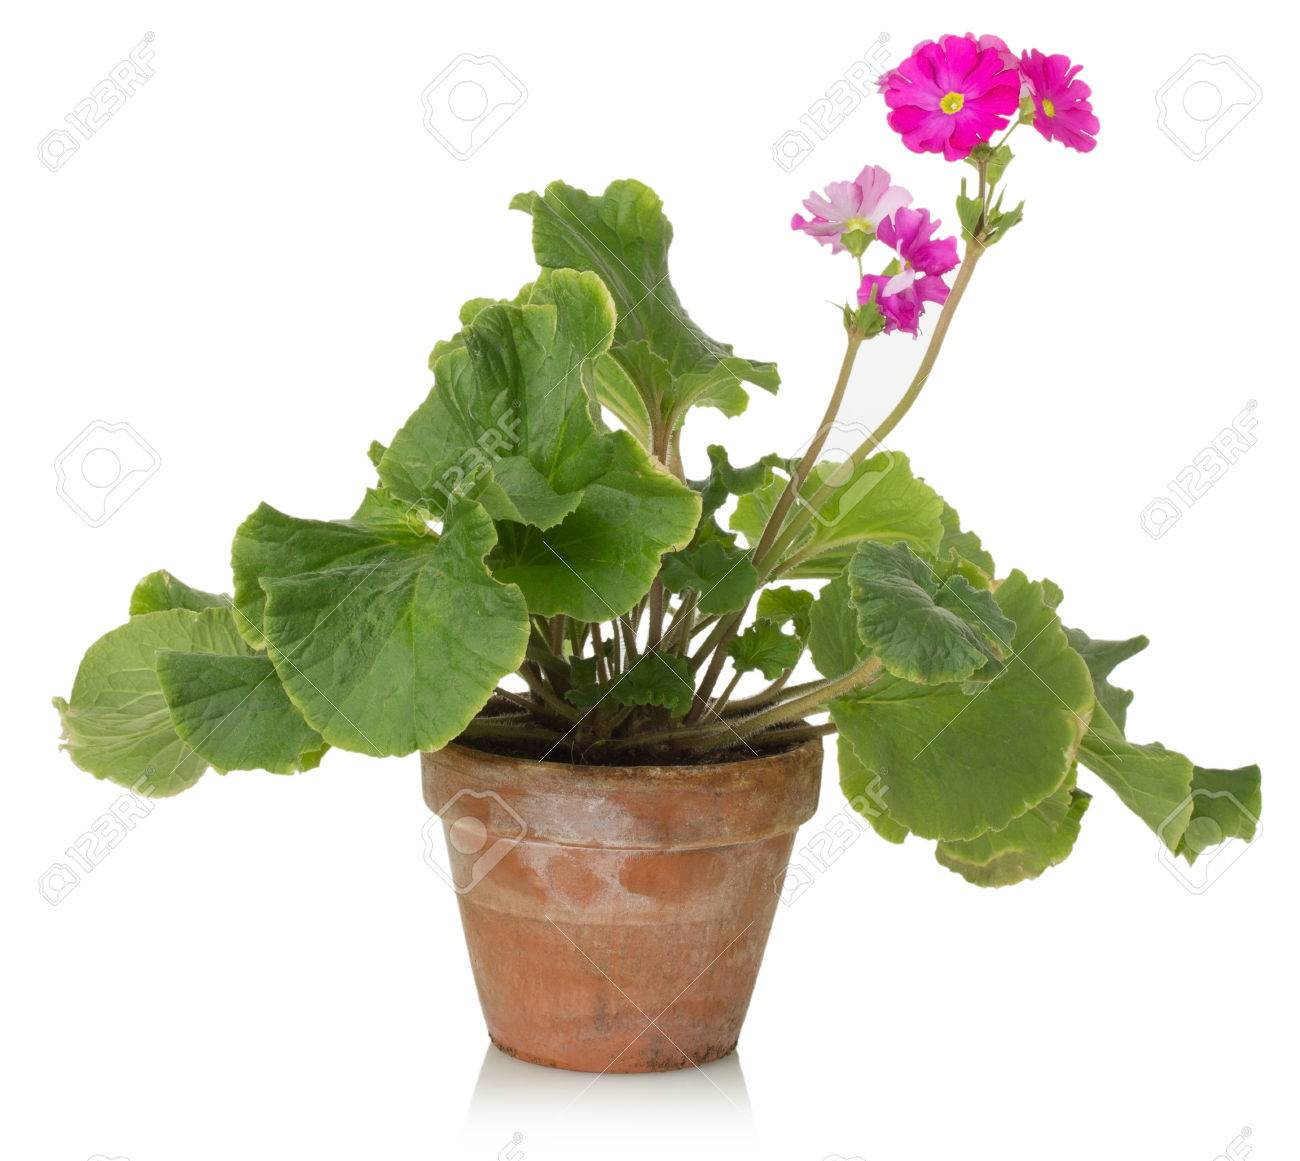 Houseplant With Pink Flower On A White Background Stock Photo